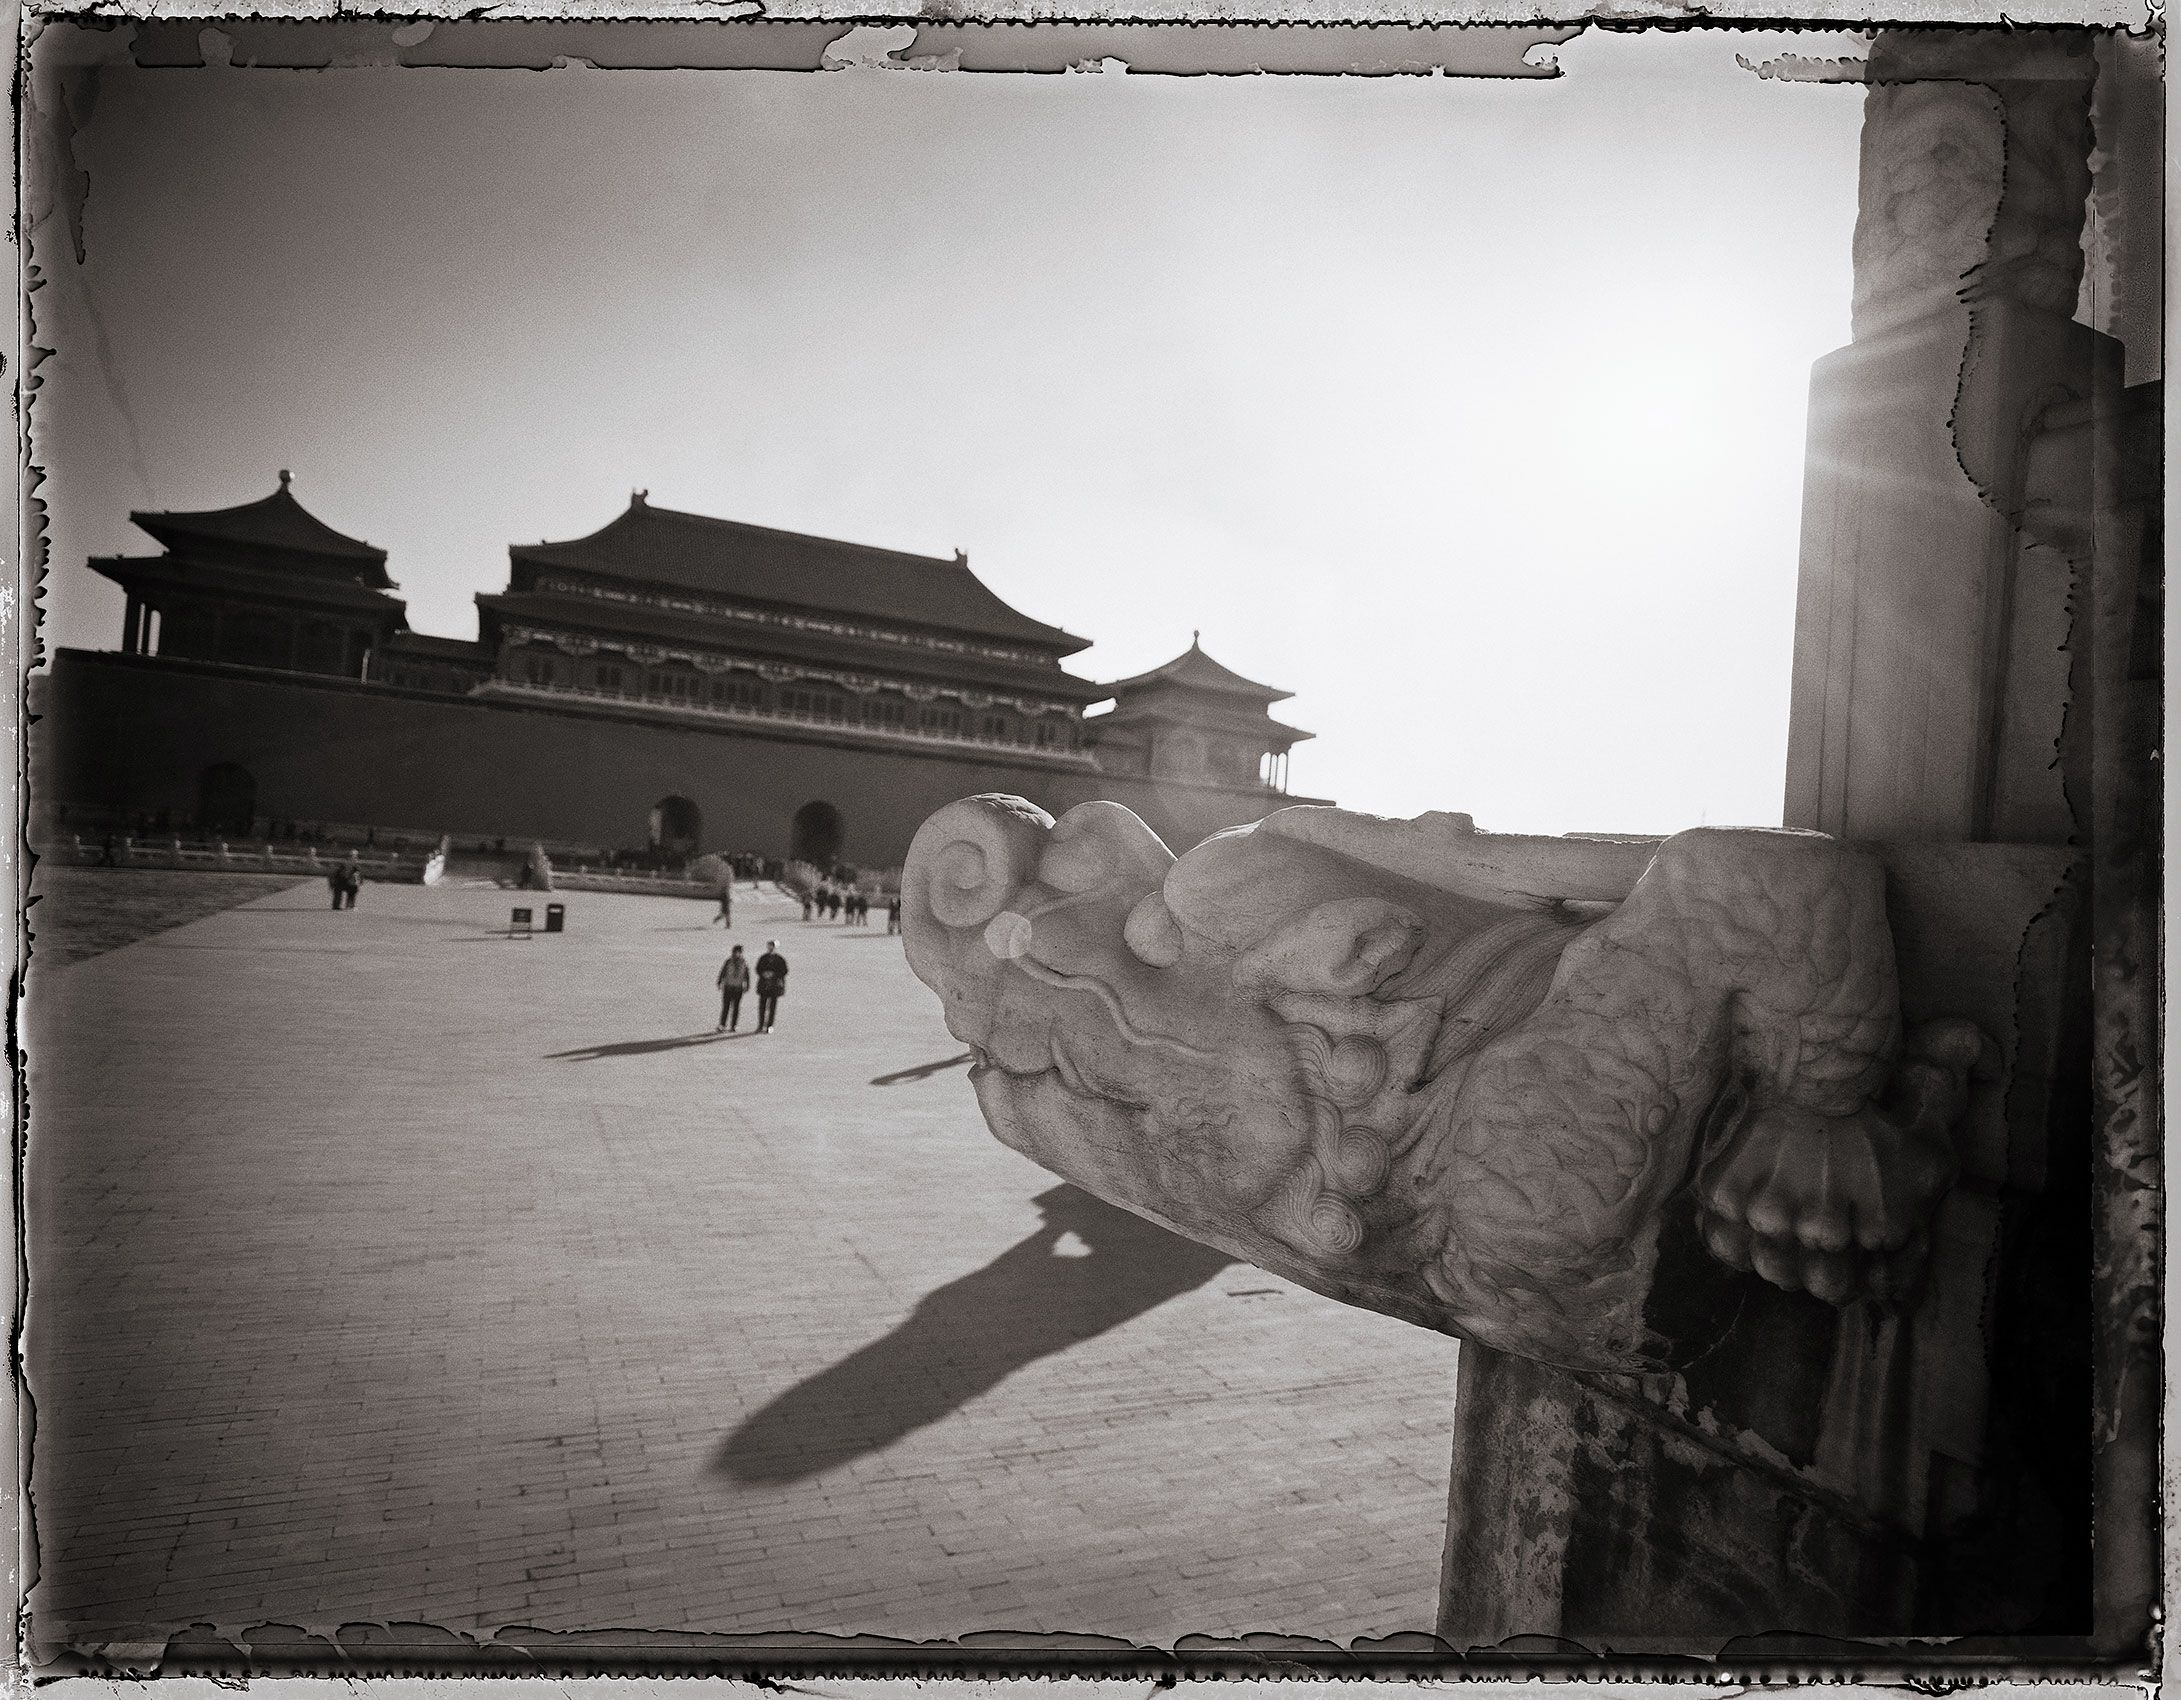 Forbidden City #2, Beijing